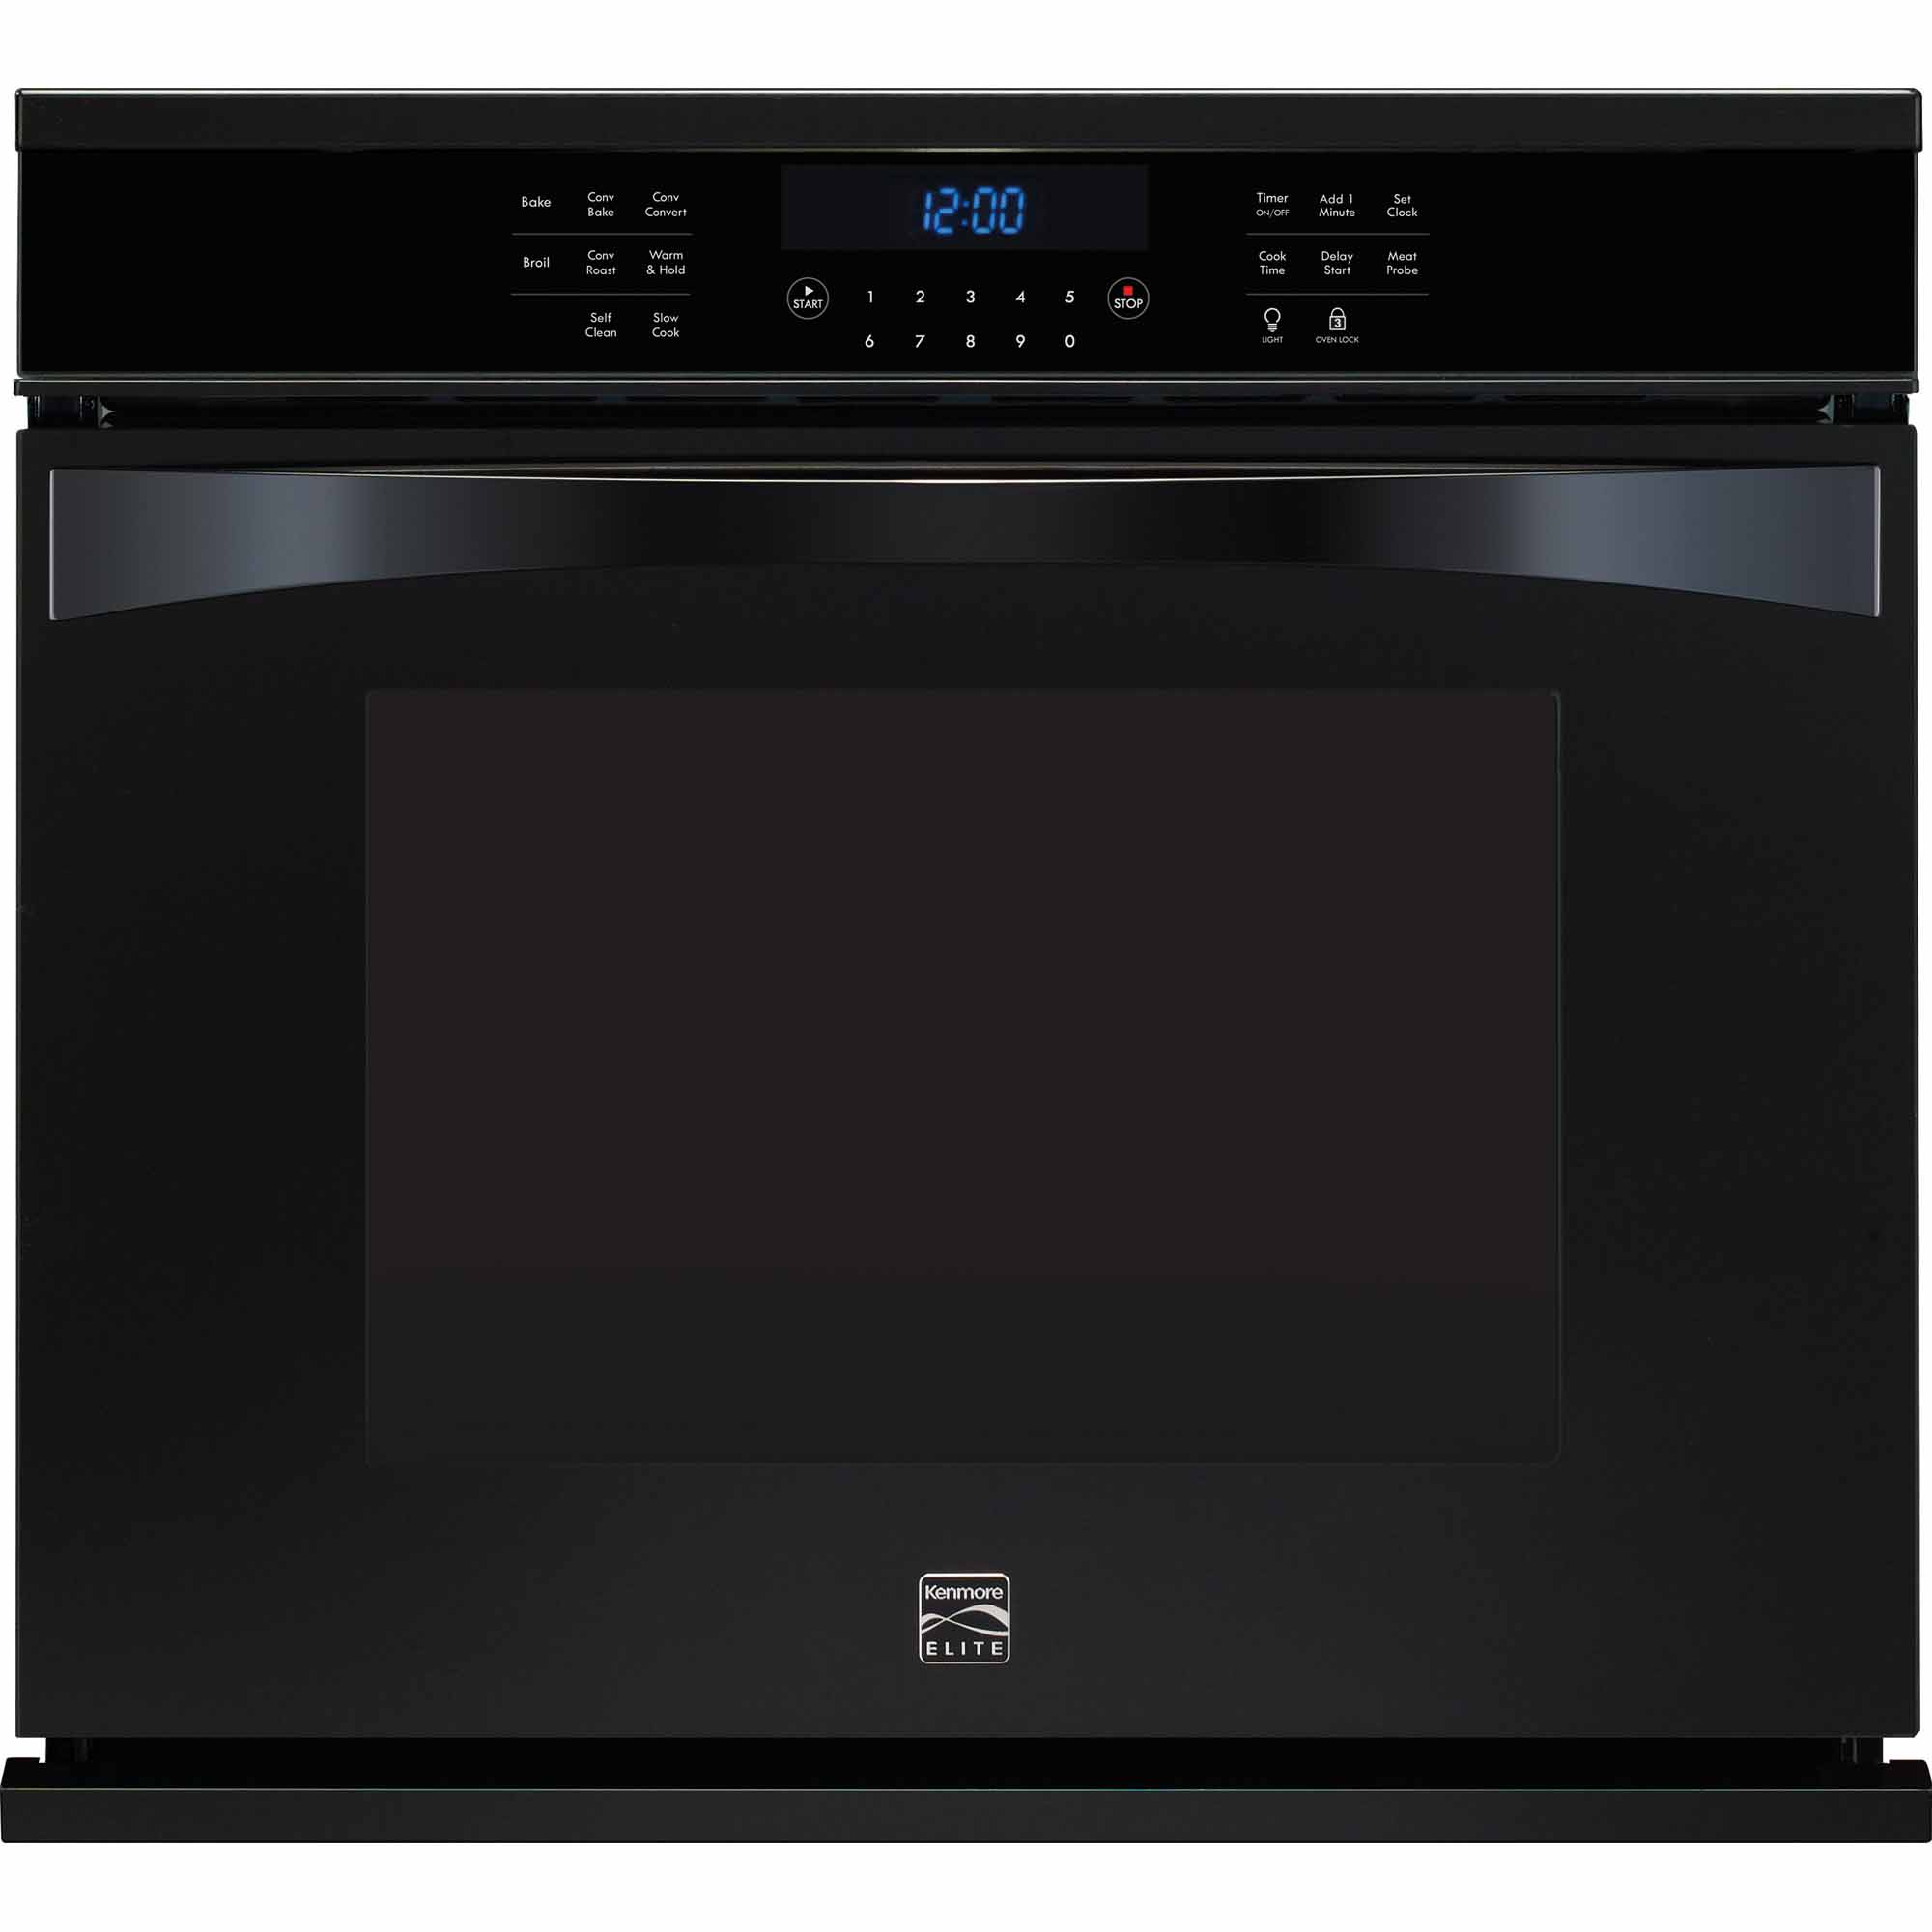 Kenmore Elite 48359 30 Electric Single Wall Oven - Black